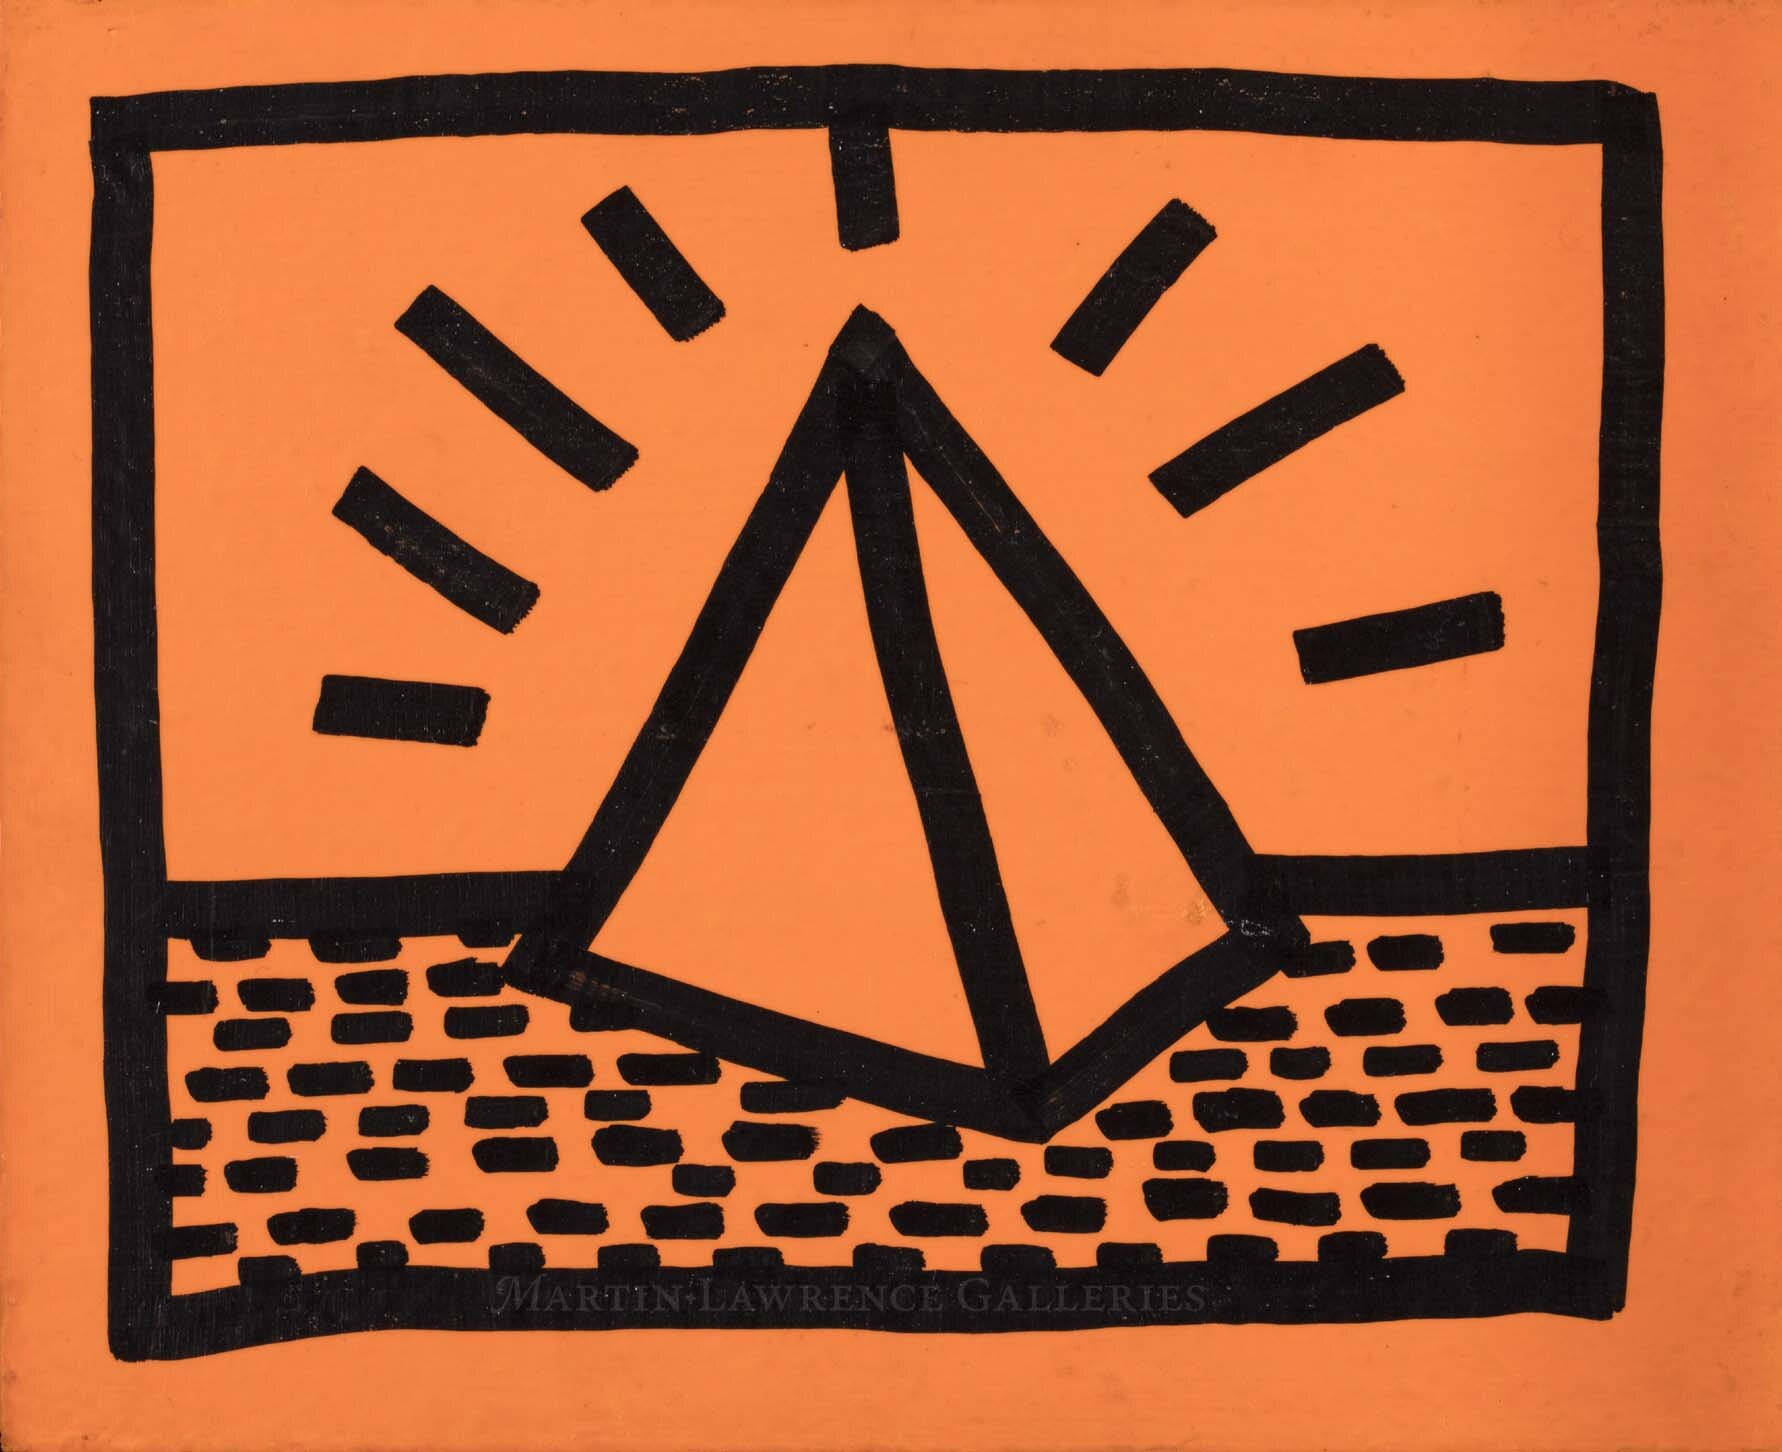 Keith Haring, Untitled, 1982 (May 17, 1982 Pyramid),    fluorescent paint and black marker on wood, signed 'K. Haring May 17, 1983' reverse